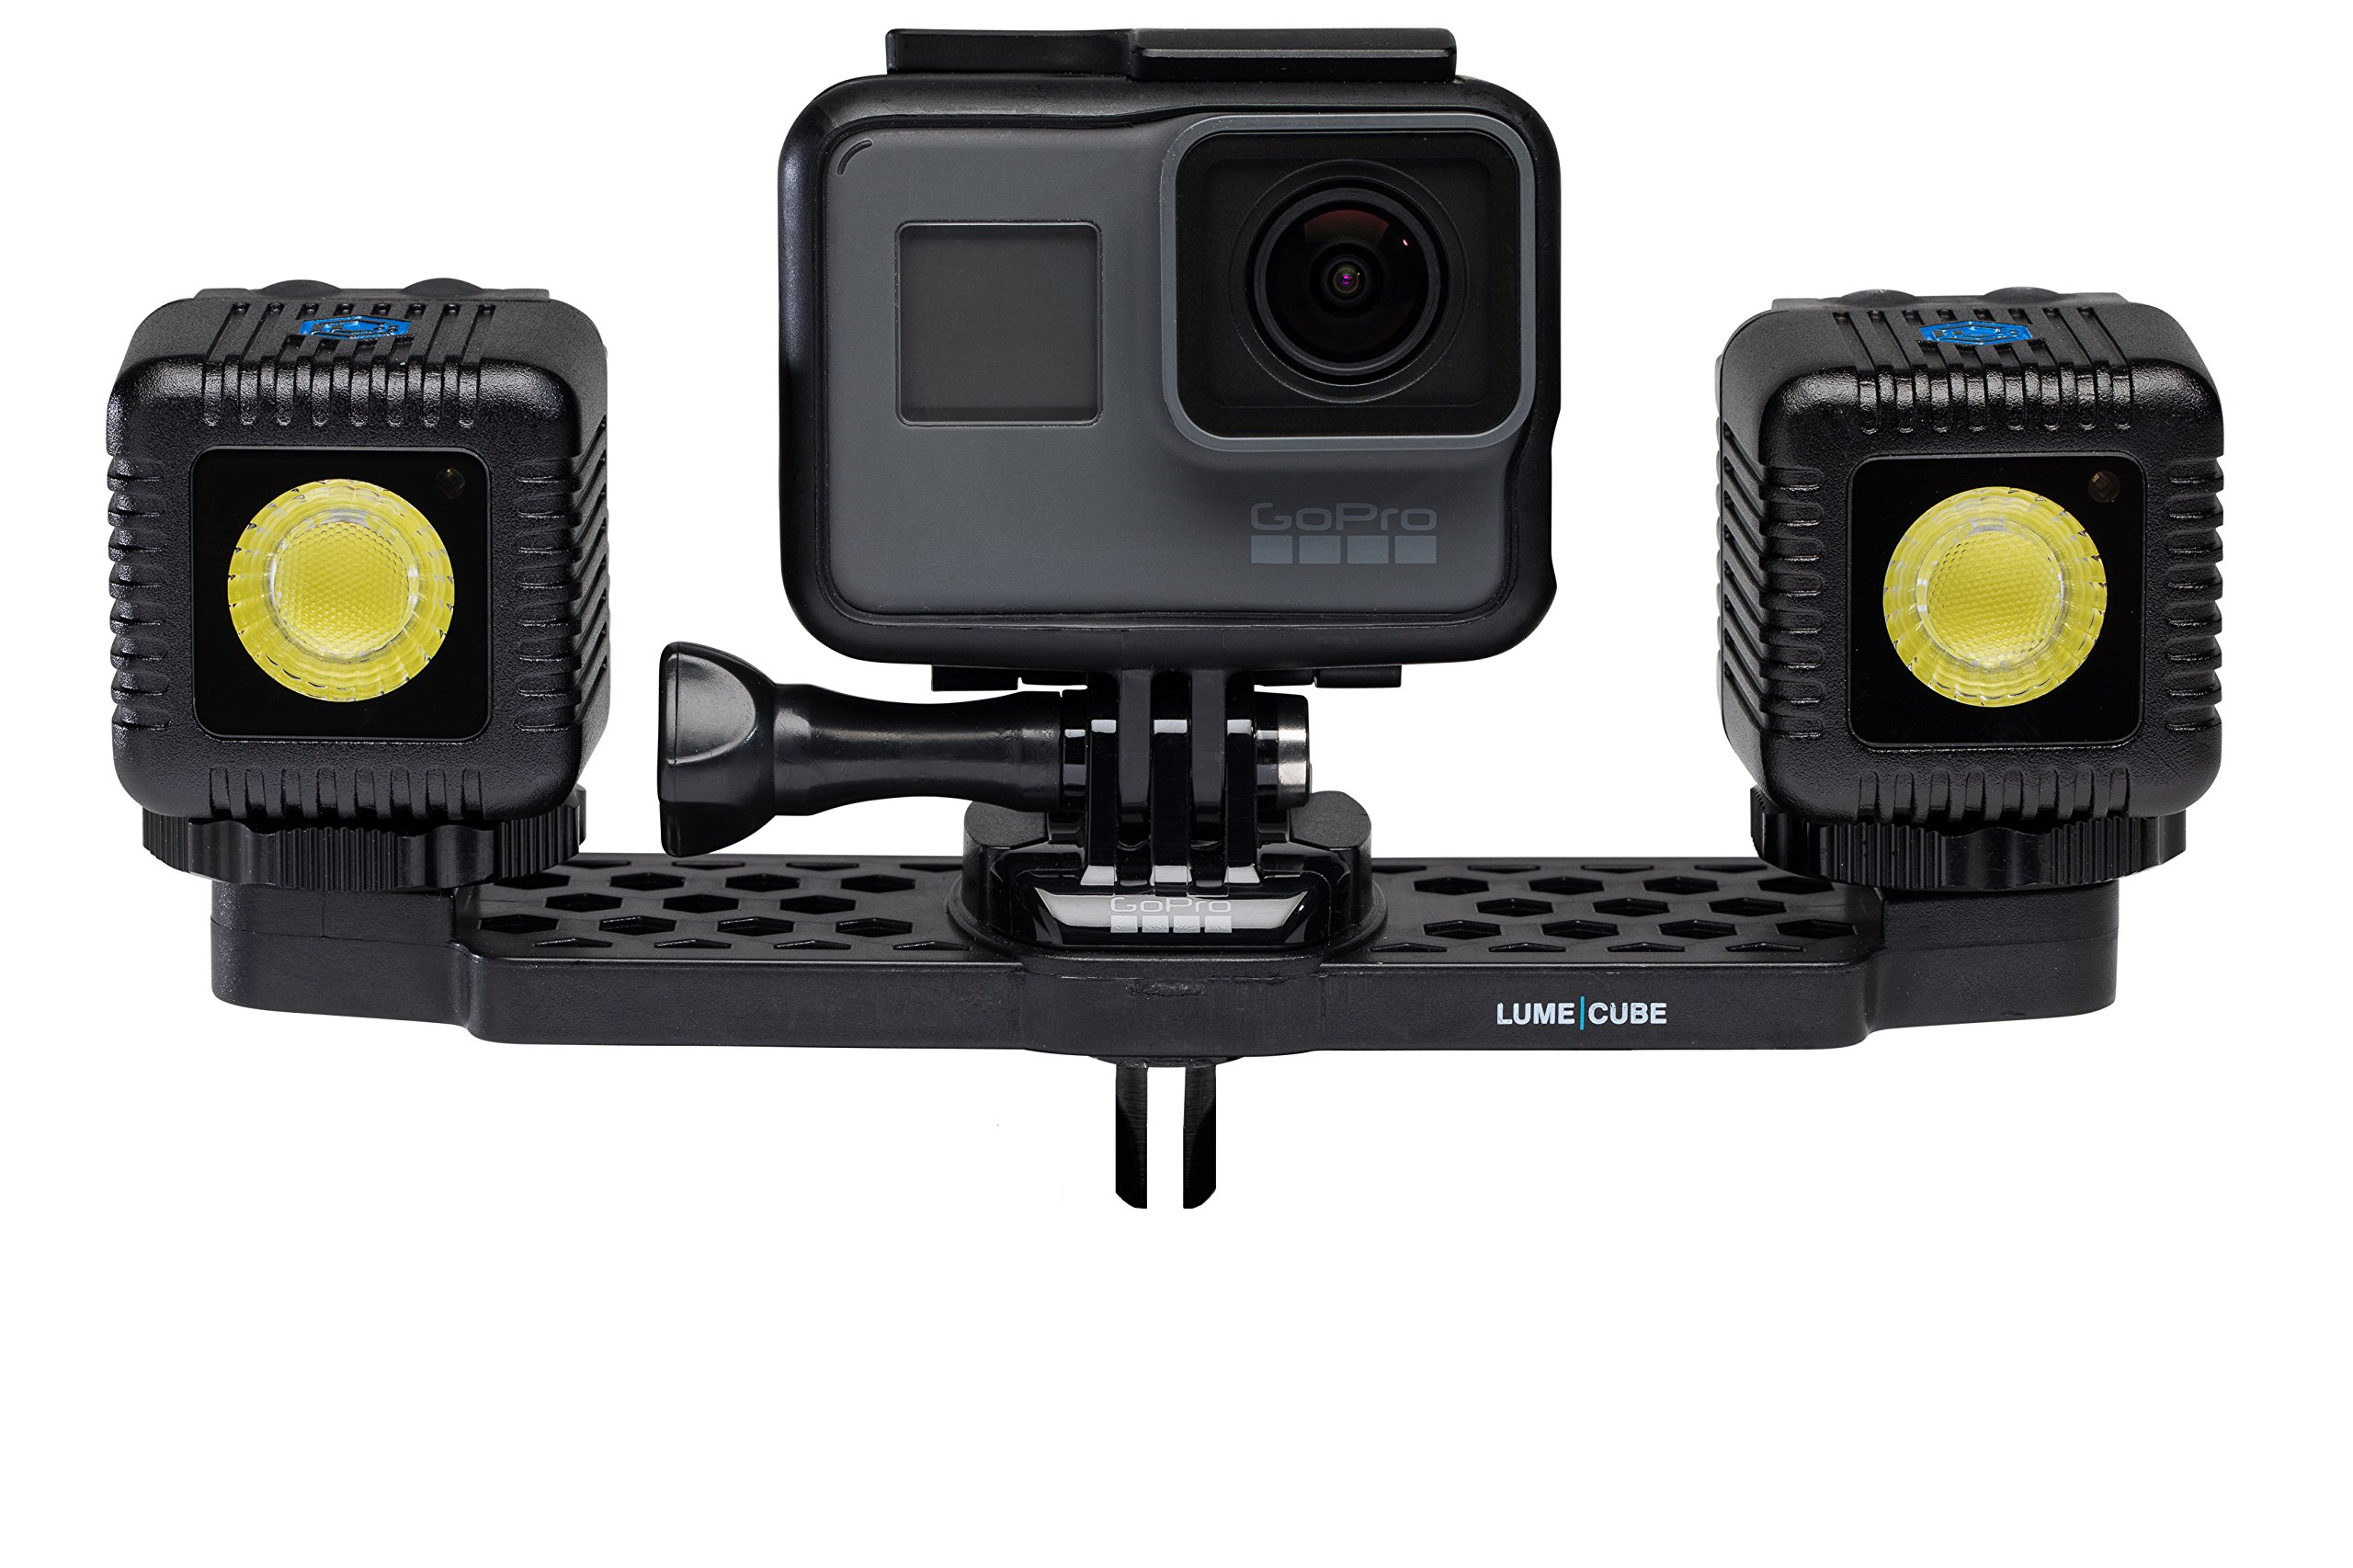 Lume Cube - Mounting Bar for GoPro/Action Cameras (Black - Mounting Bar) by LUME CUBE (Image #4)